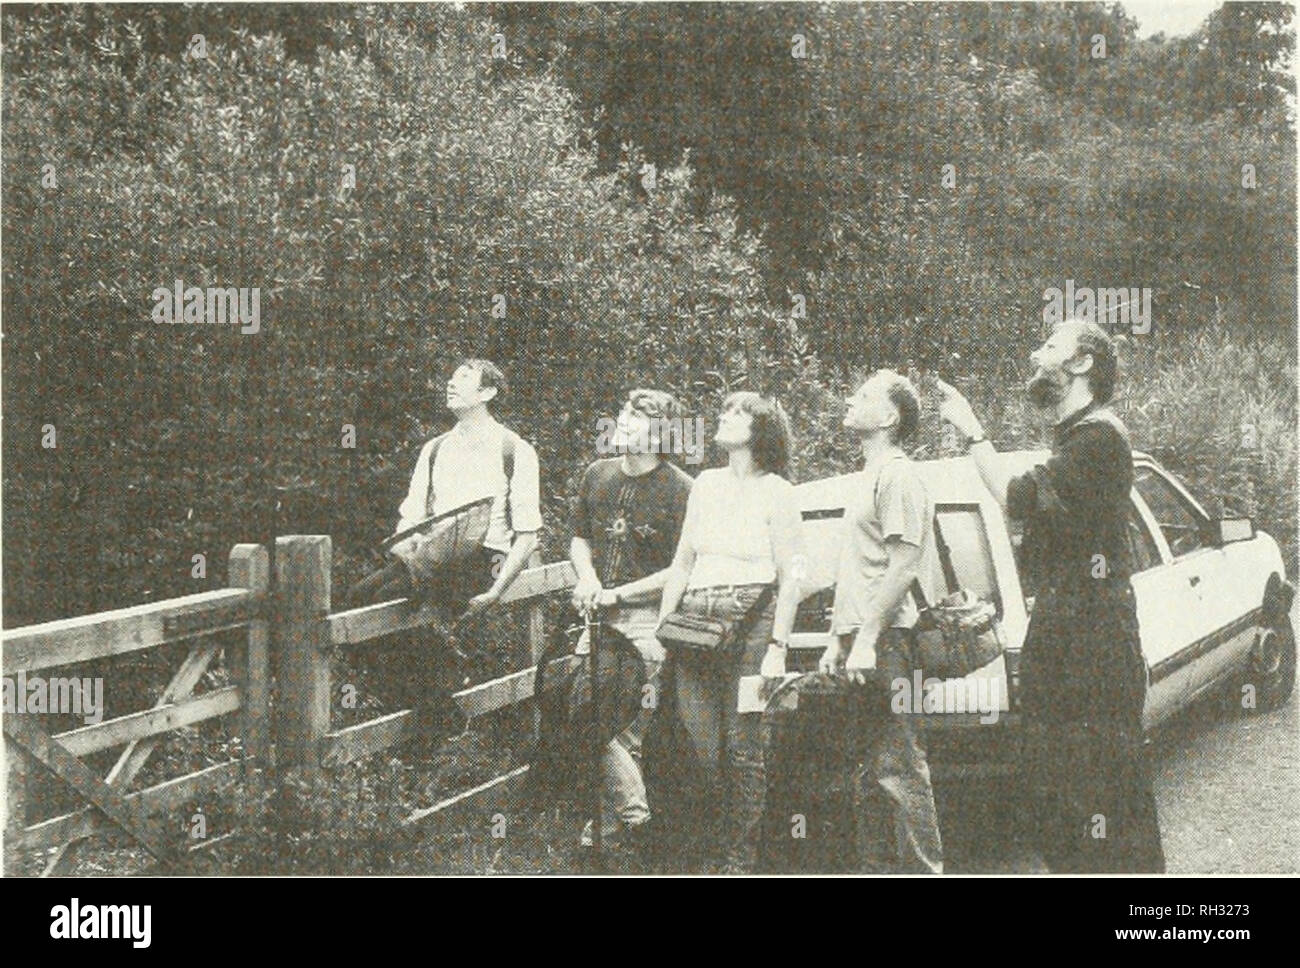 . British journal of entomology and natural history. Natural history; Entomology. BR. J. ENT. NAT. HIST., 5: 1992. Fig. 1. Some of the day-time party watching a group of migrant hawker dragonflies, Aeshna mixta, by the entrance to Jackson's Covert. Left to right: Gavin Boyd, Peter Tebbutt, Diana and Peter Sharpe, and the warden of the reserve, Alan Bowley. Photo P. Waring. during the week and one could probably have counted a hundred or more by walking along these dykes. The peacocks were joined by a few small tortoiseshells Aglais urticae L., large and small whites Pieris brassicae L. and P.  - Stock Image